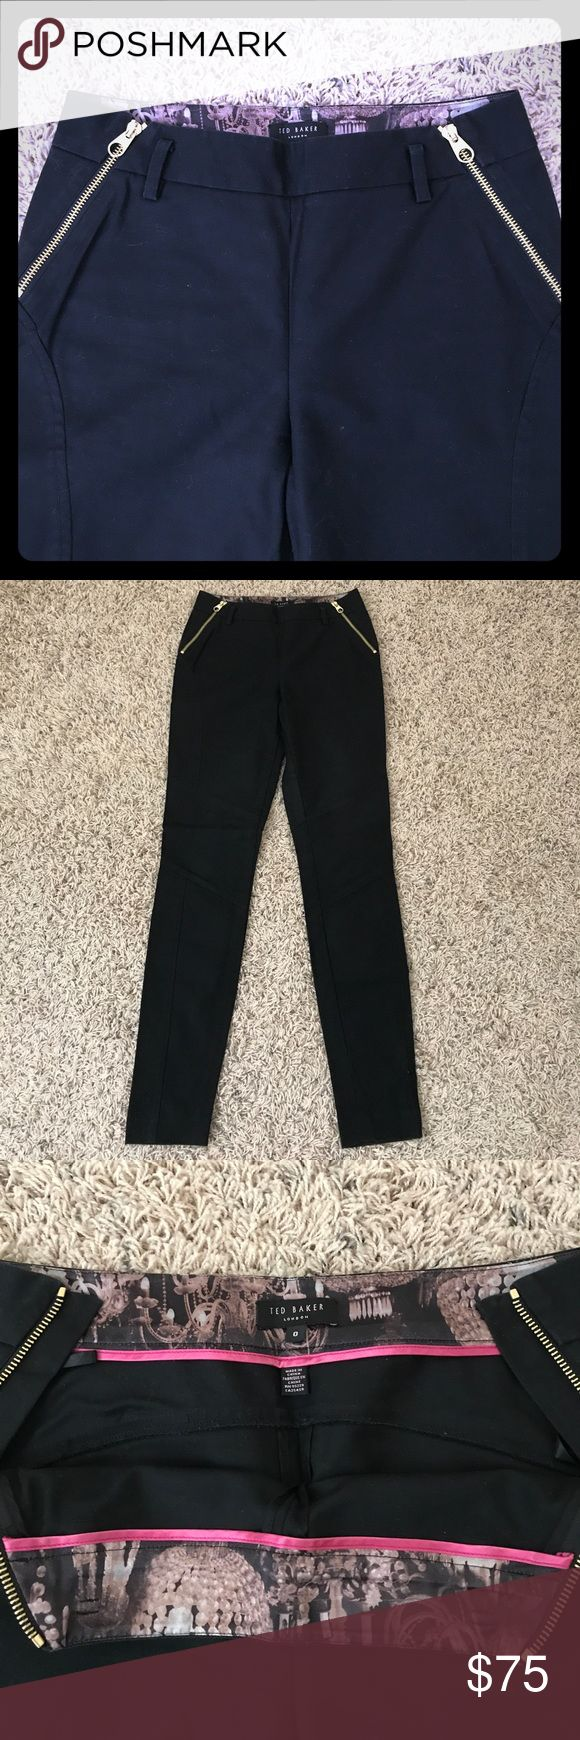 Never worn Ted Baker skinny black trousers The perfect pair of trousers for a sophisticated and trendy look. The skinny fit makes your legs look long and lean - who doesn't want that?! The golden zips on the side add a touch of ooh la-la 💕 Ted Baker London Pants Trousers